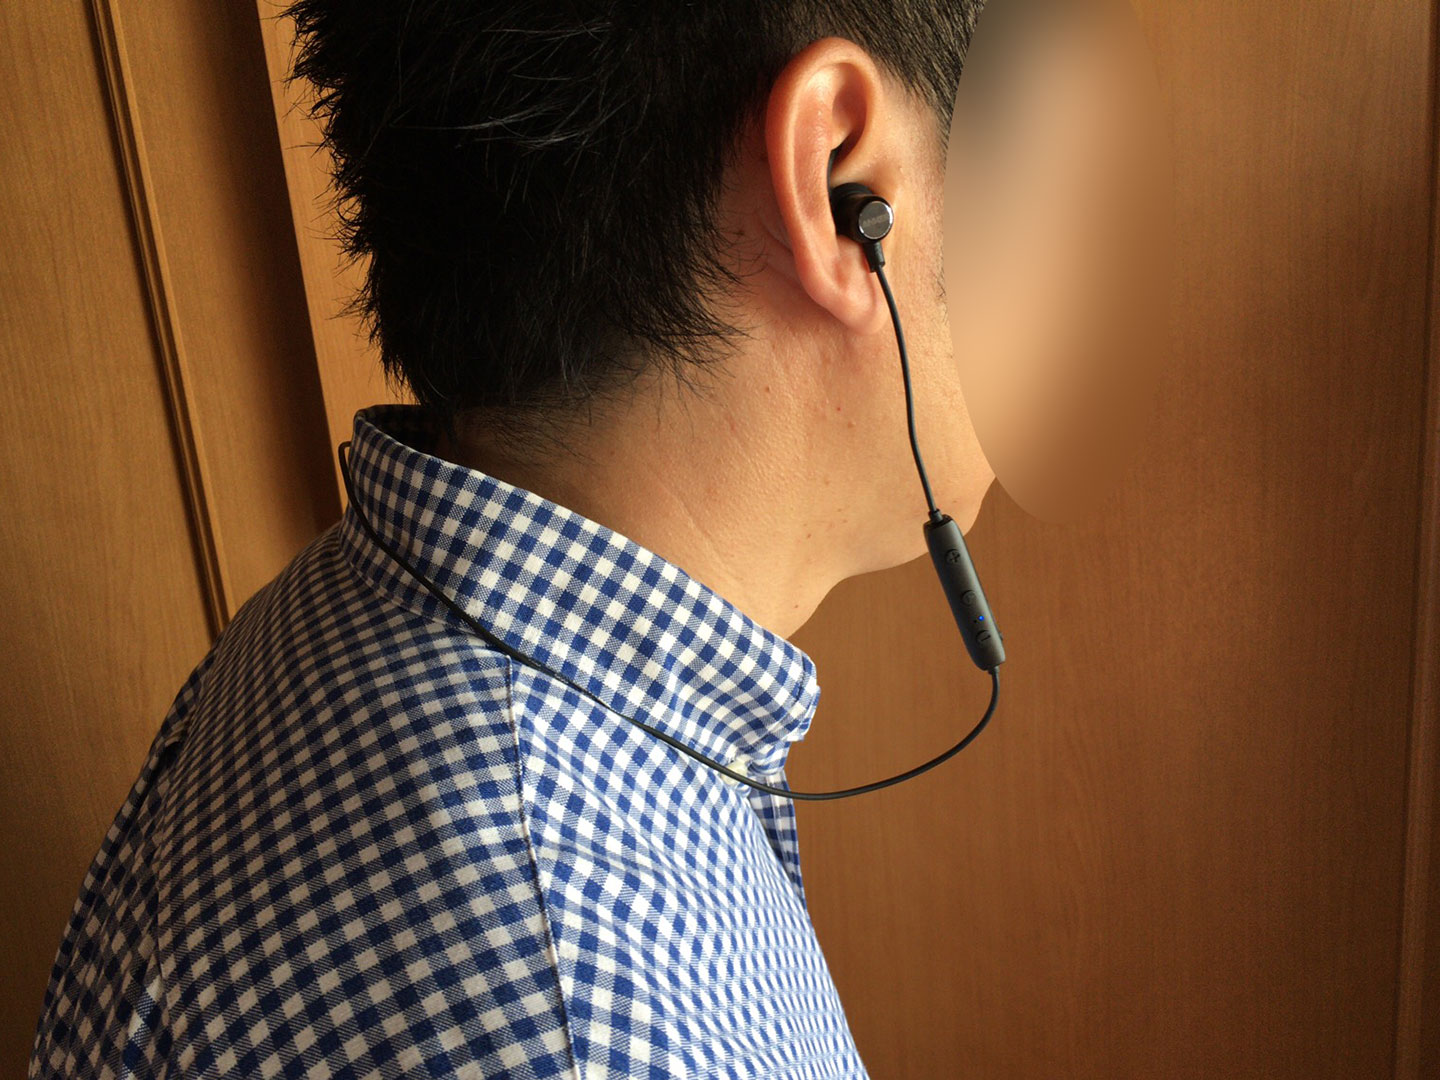 Anker SoundBuds Slim Bluetoothイヤホン(カナル型)